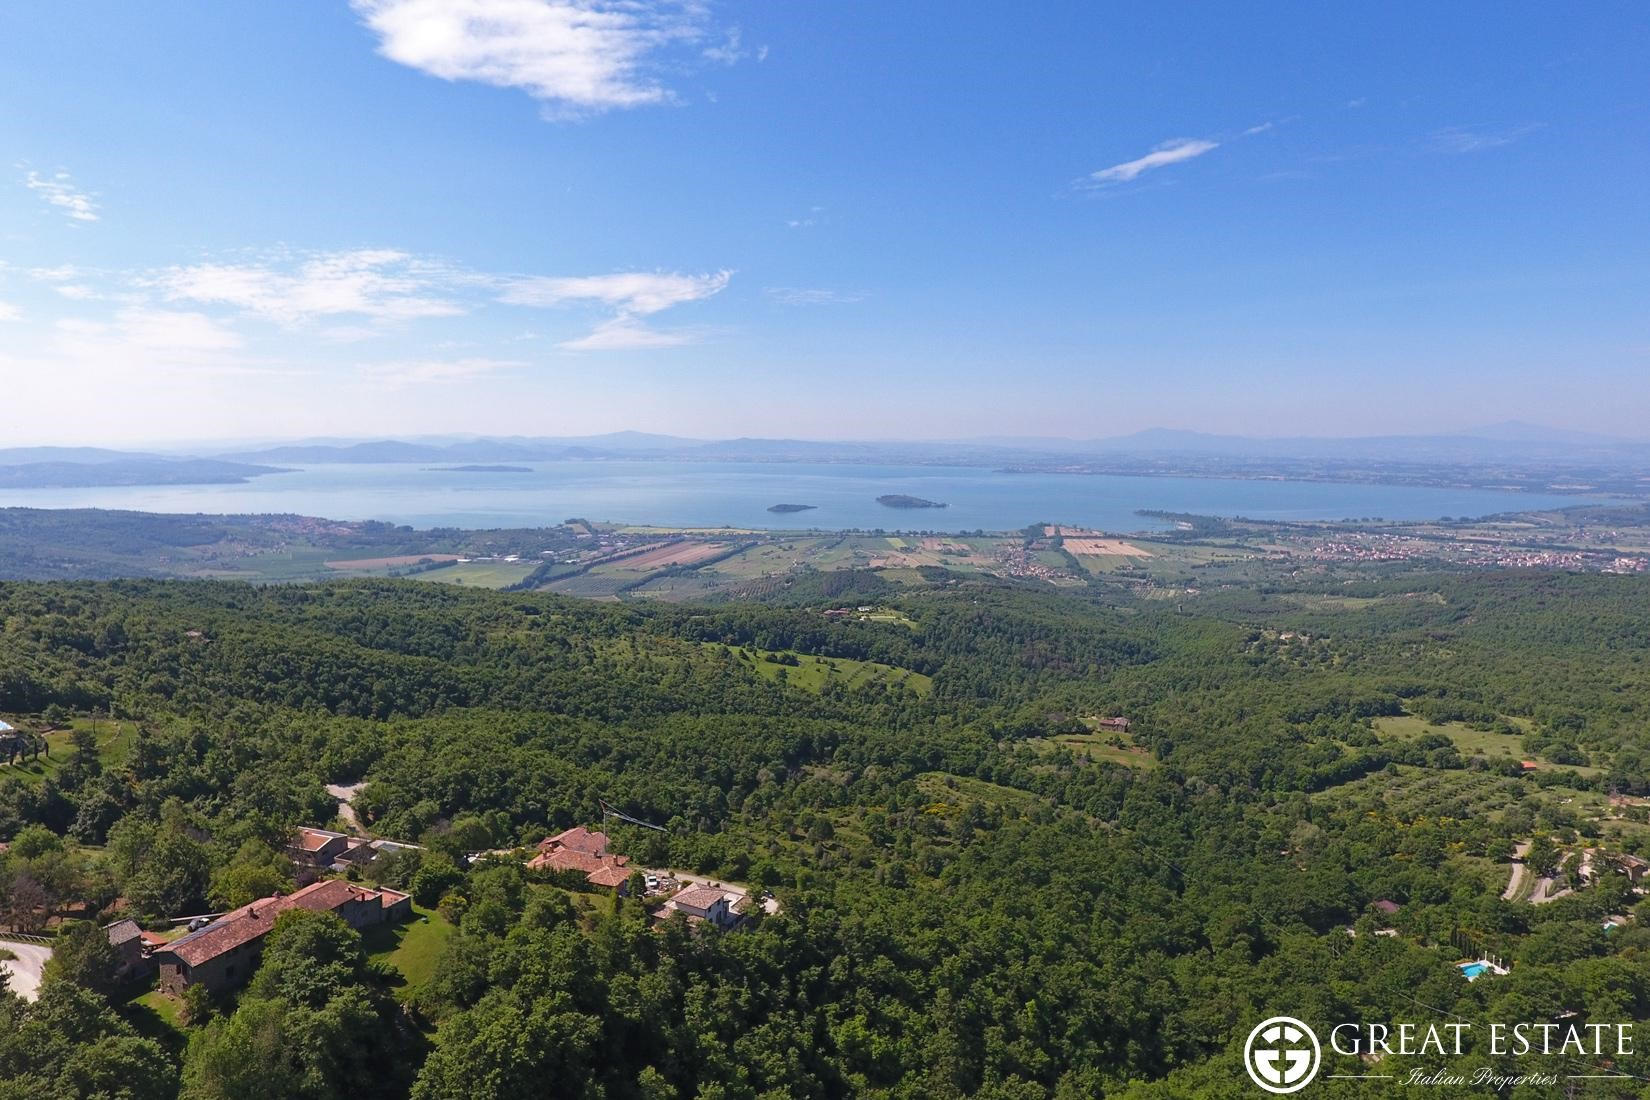 Trasimeno Lake, from the newspapers to the journey: chronicles of a place to discover.